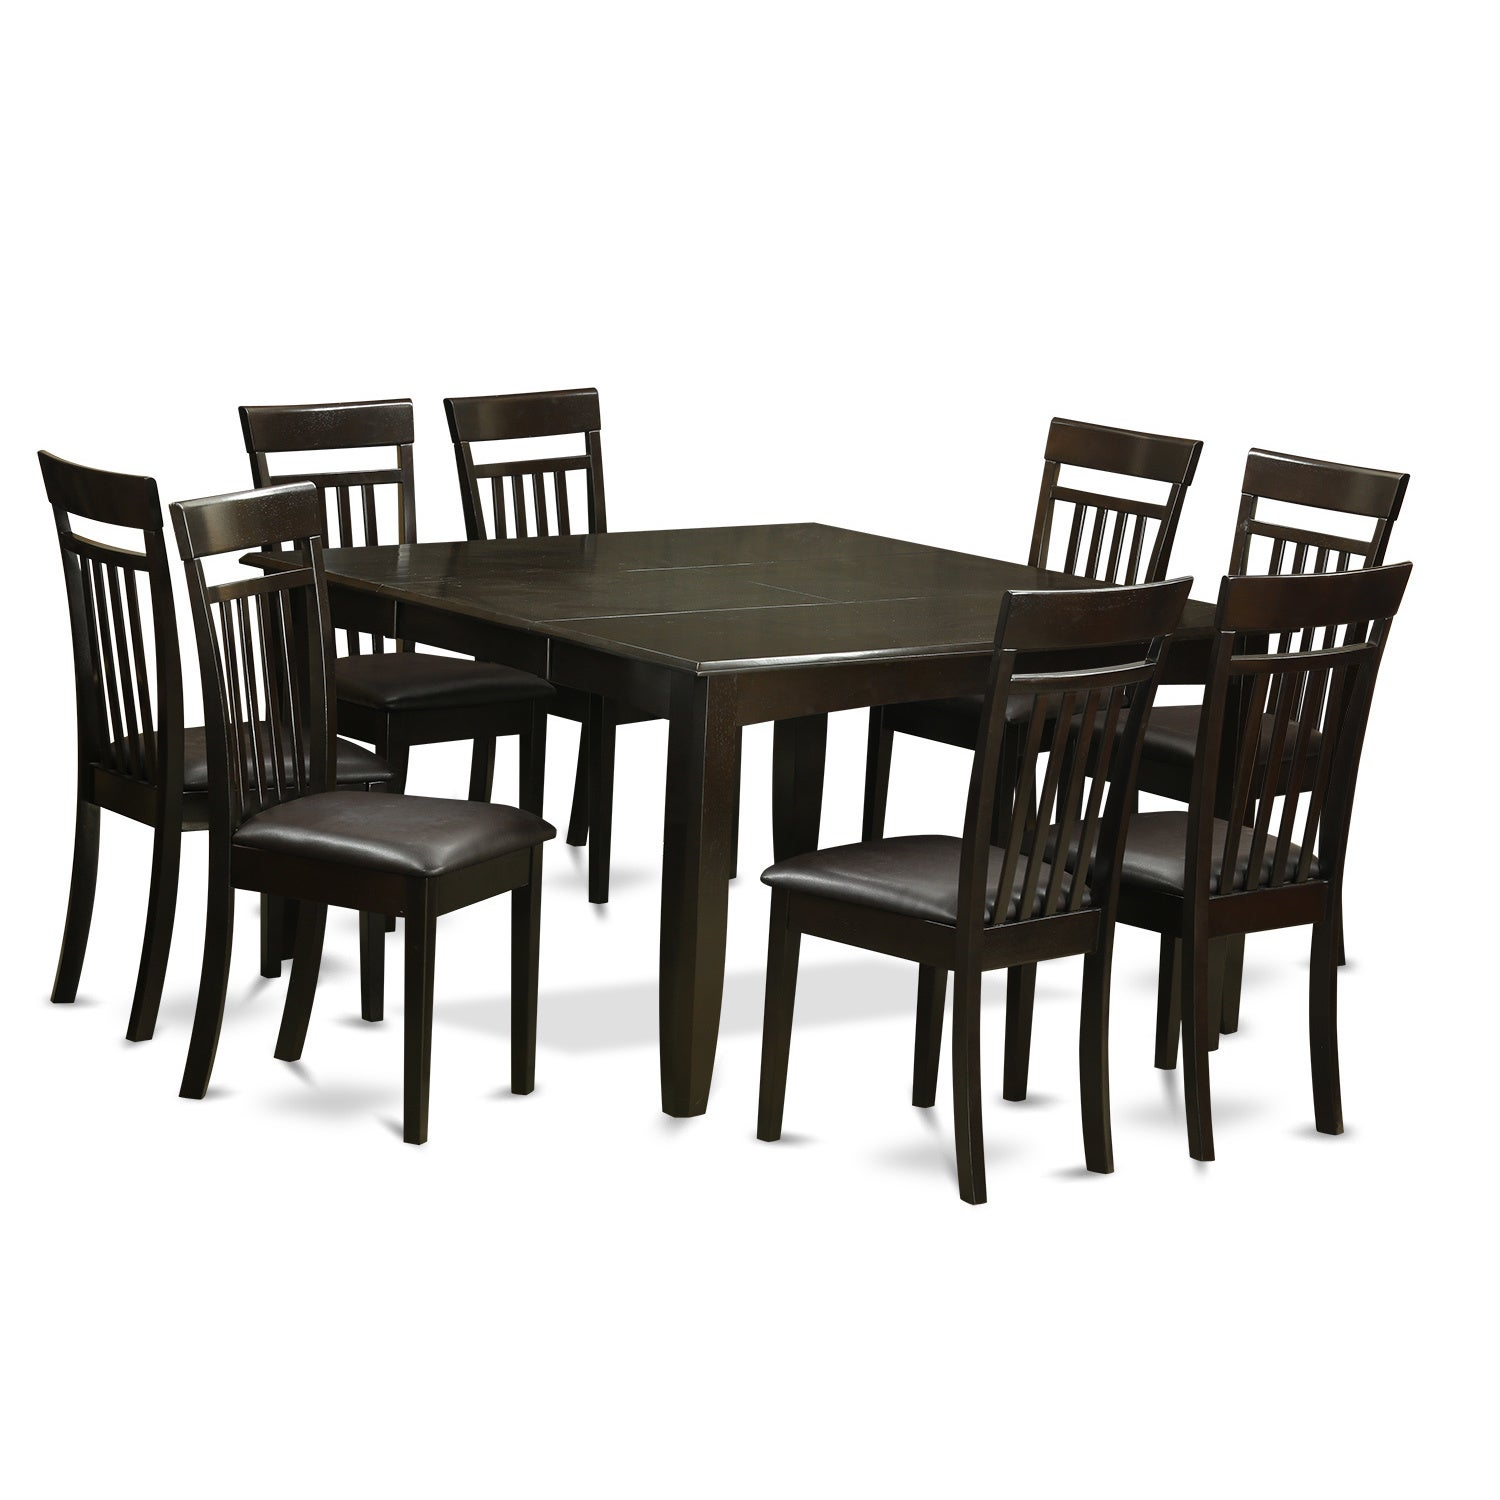 Captivating Shop 9 Piece Cappuccino Brown Rubberwood Dining Room Set   Free Shipping  Today   Overstock.com   11967736